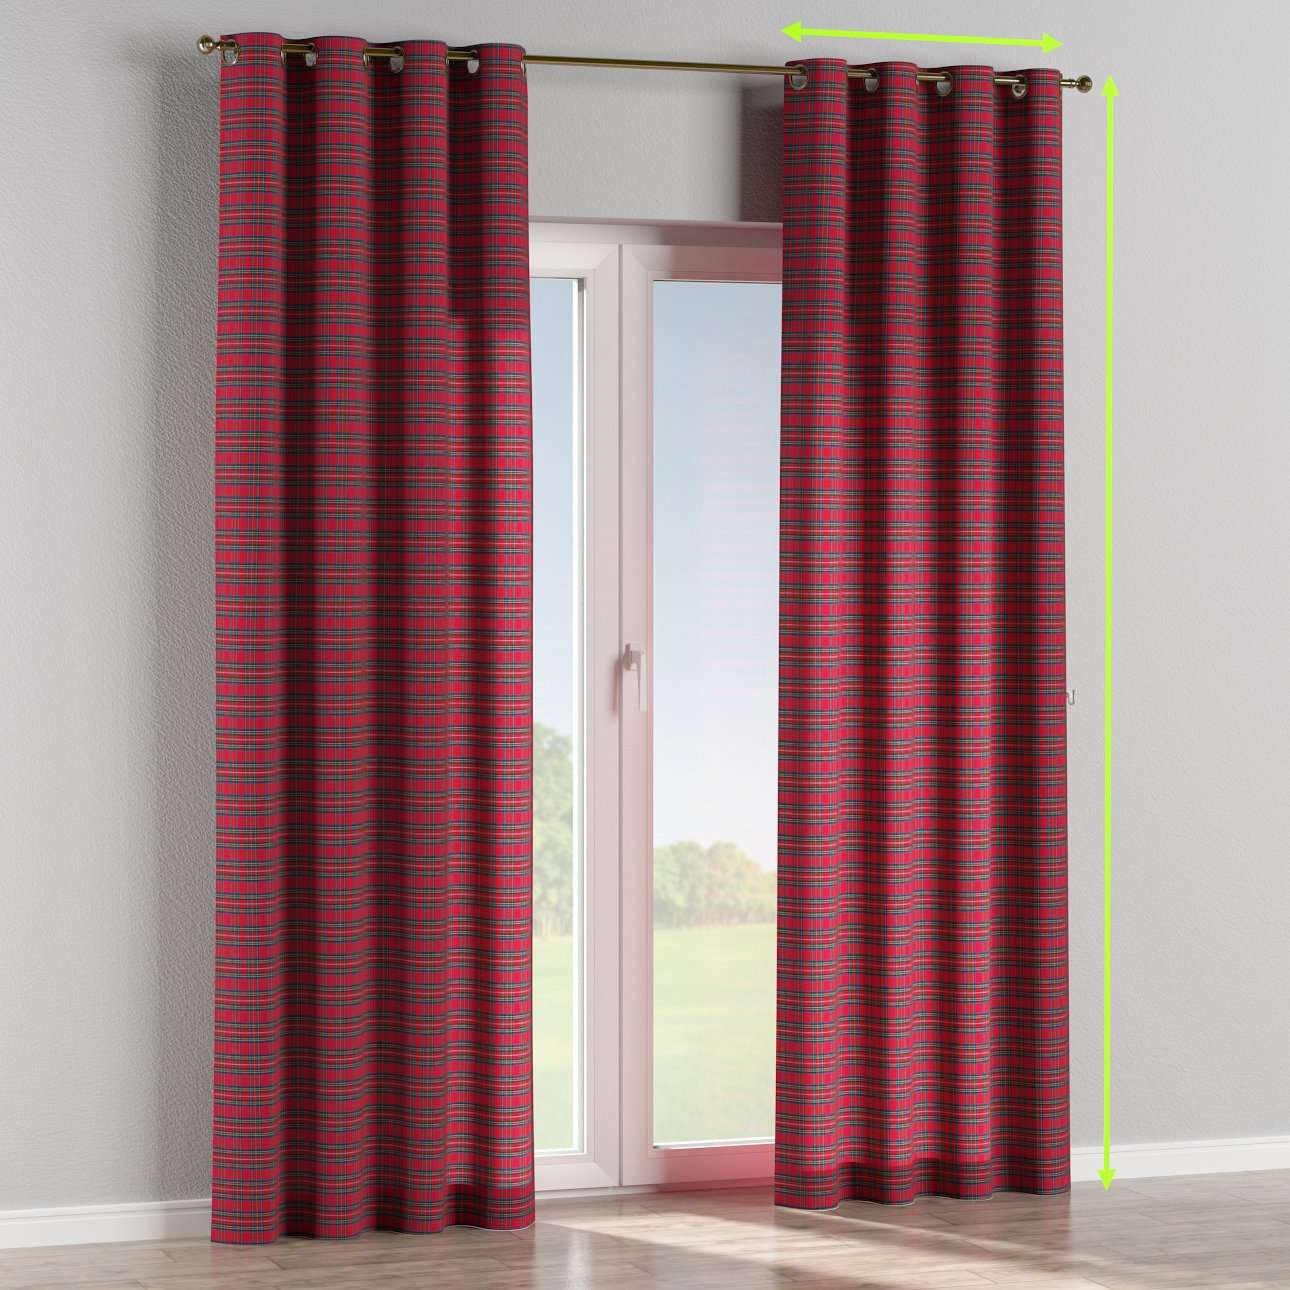 Eyelet lined curtains in collection Bristol, fabric: 126-29